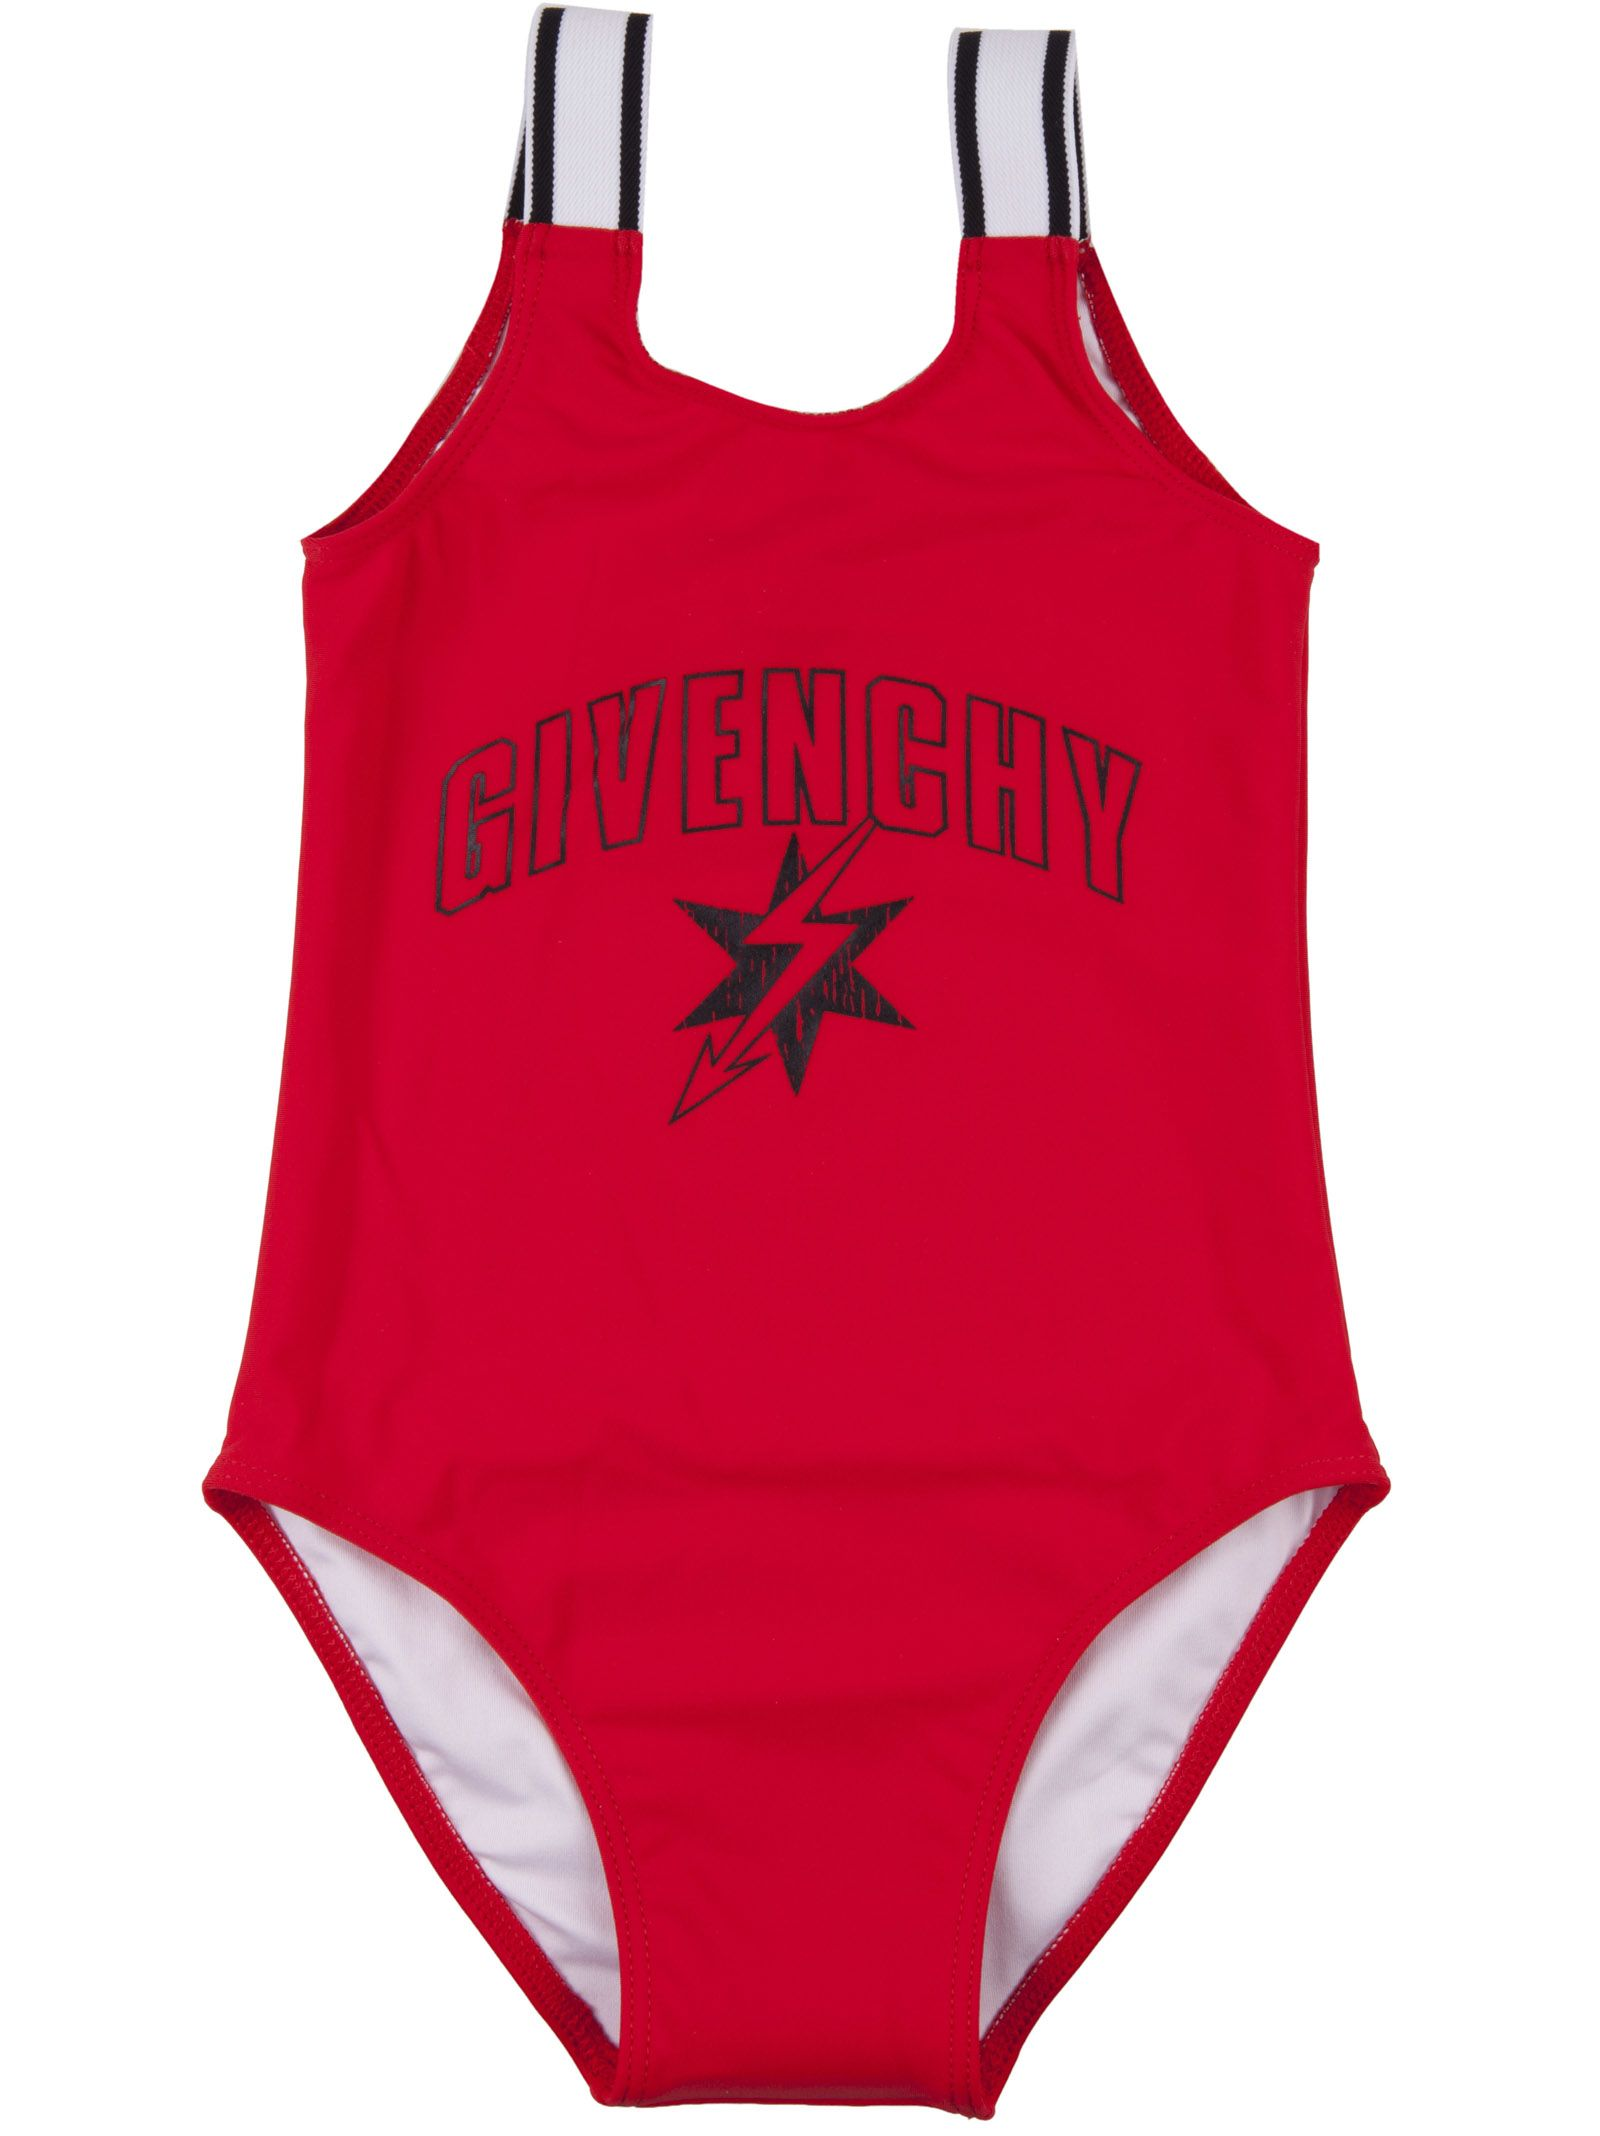 347078b26d68b Givenchy Givenchy Kids Swimsuit - Red - 10908854 | italist